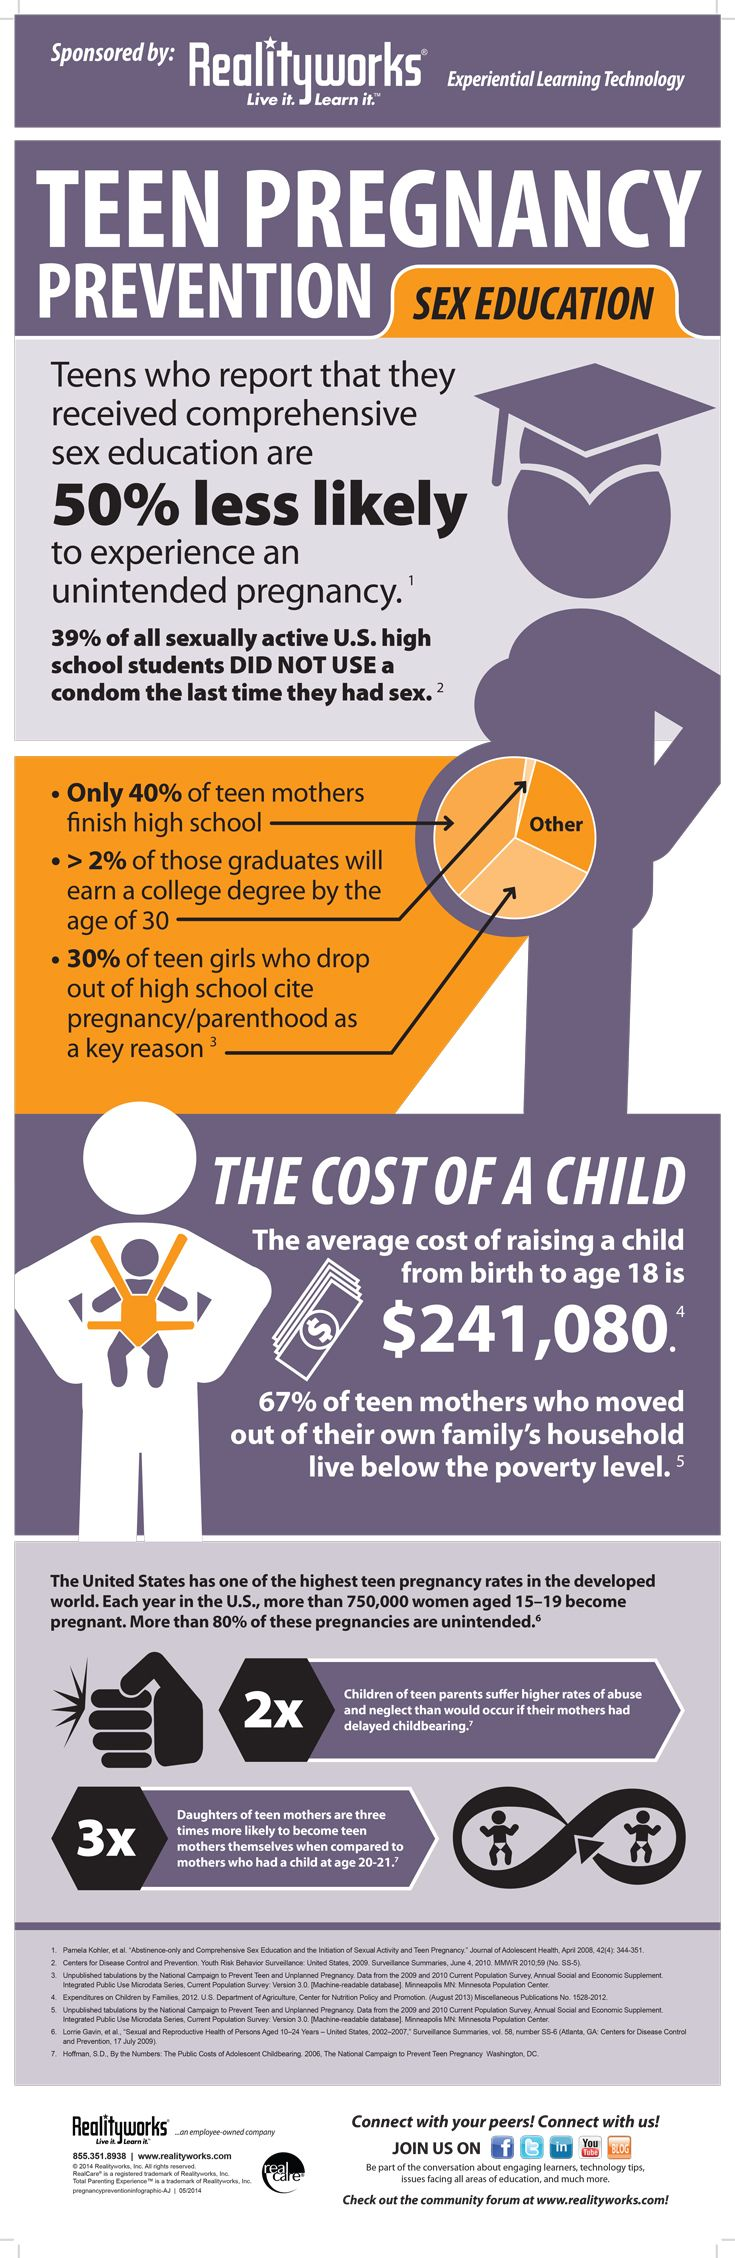 In this Teen Pregnancy Prevention infographic, we